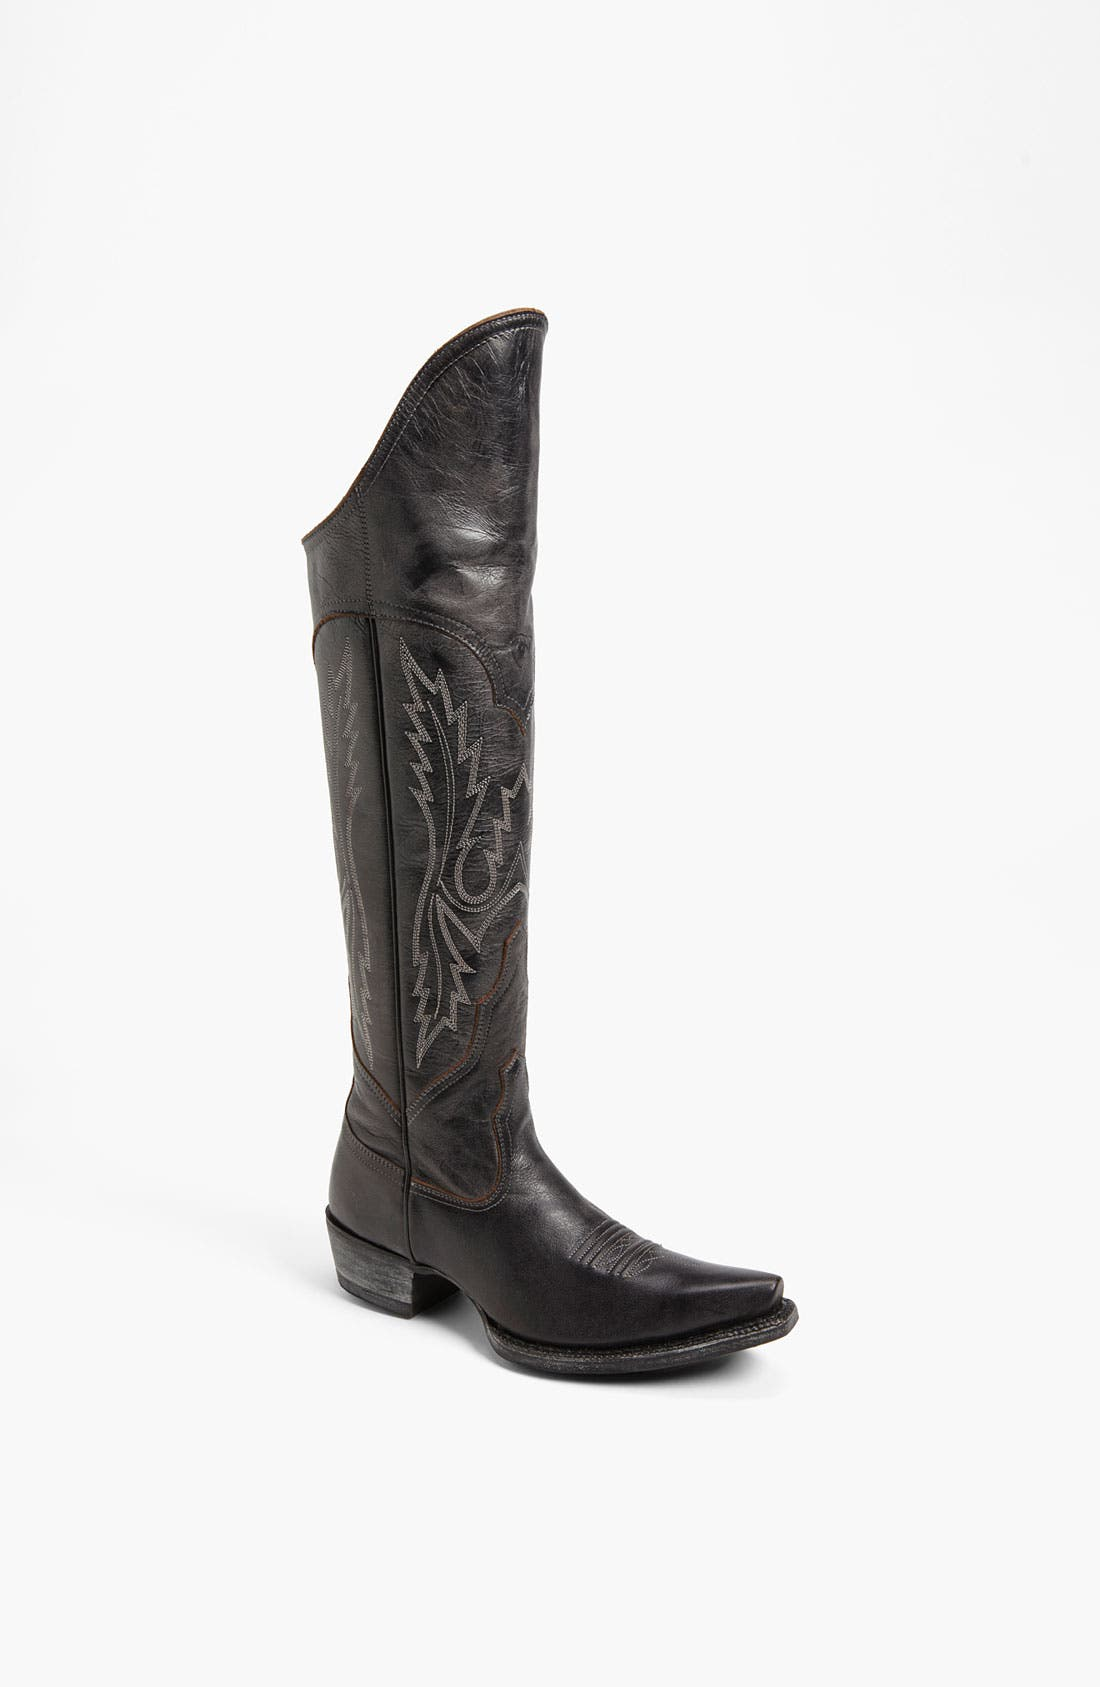 ARIAT,                             'Murrieta' Boot,                             Main thumbnail 1, color,                             003